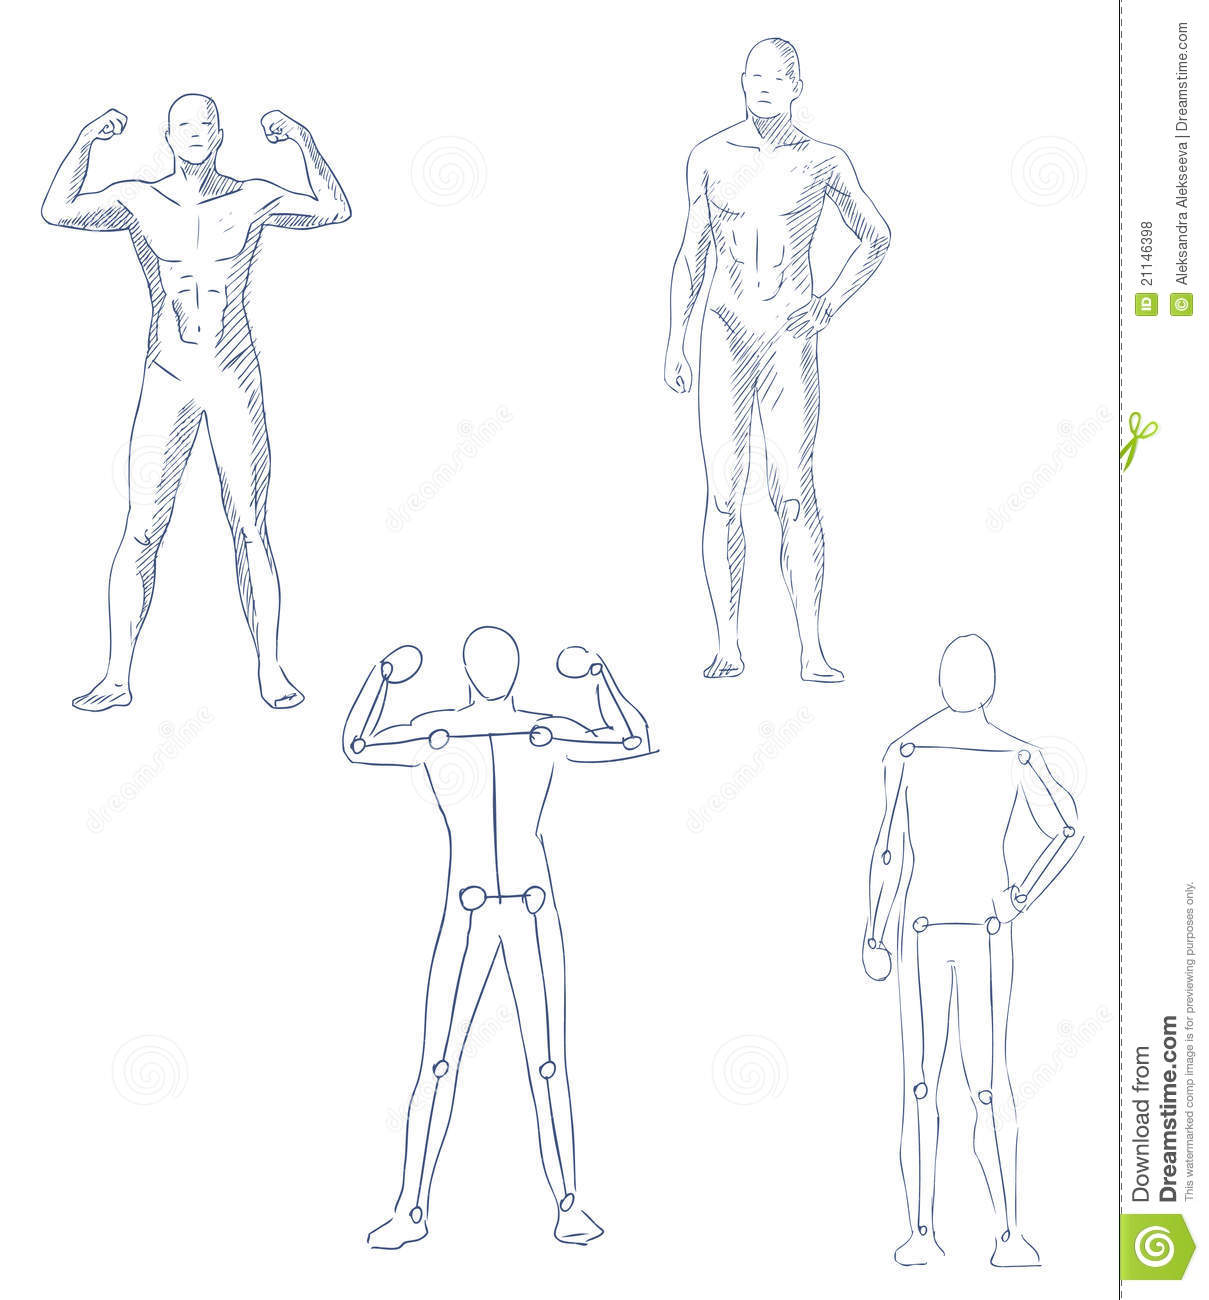 Human In Motion Artistic Sketch Royalty Free Stock Photos